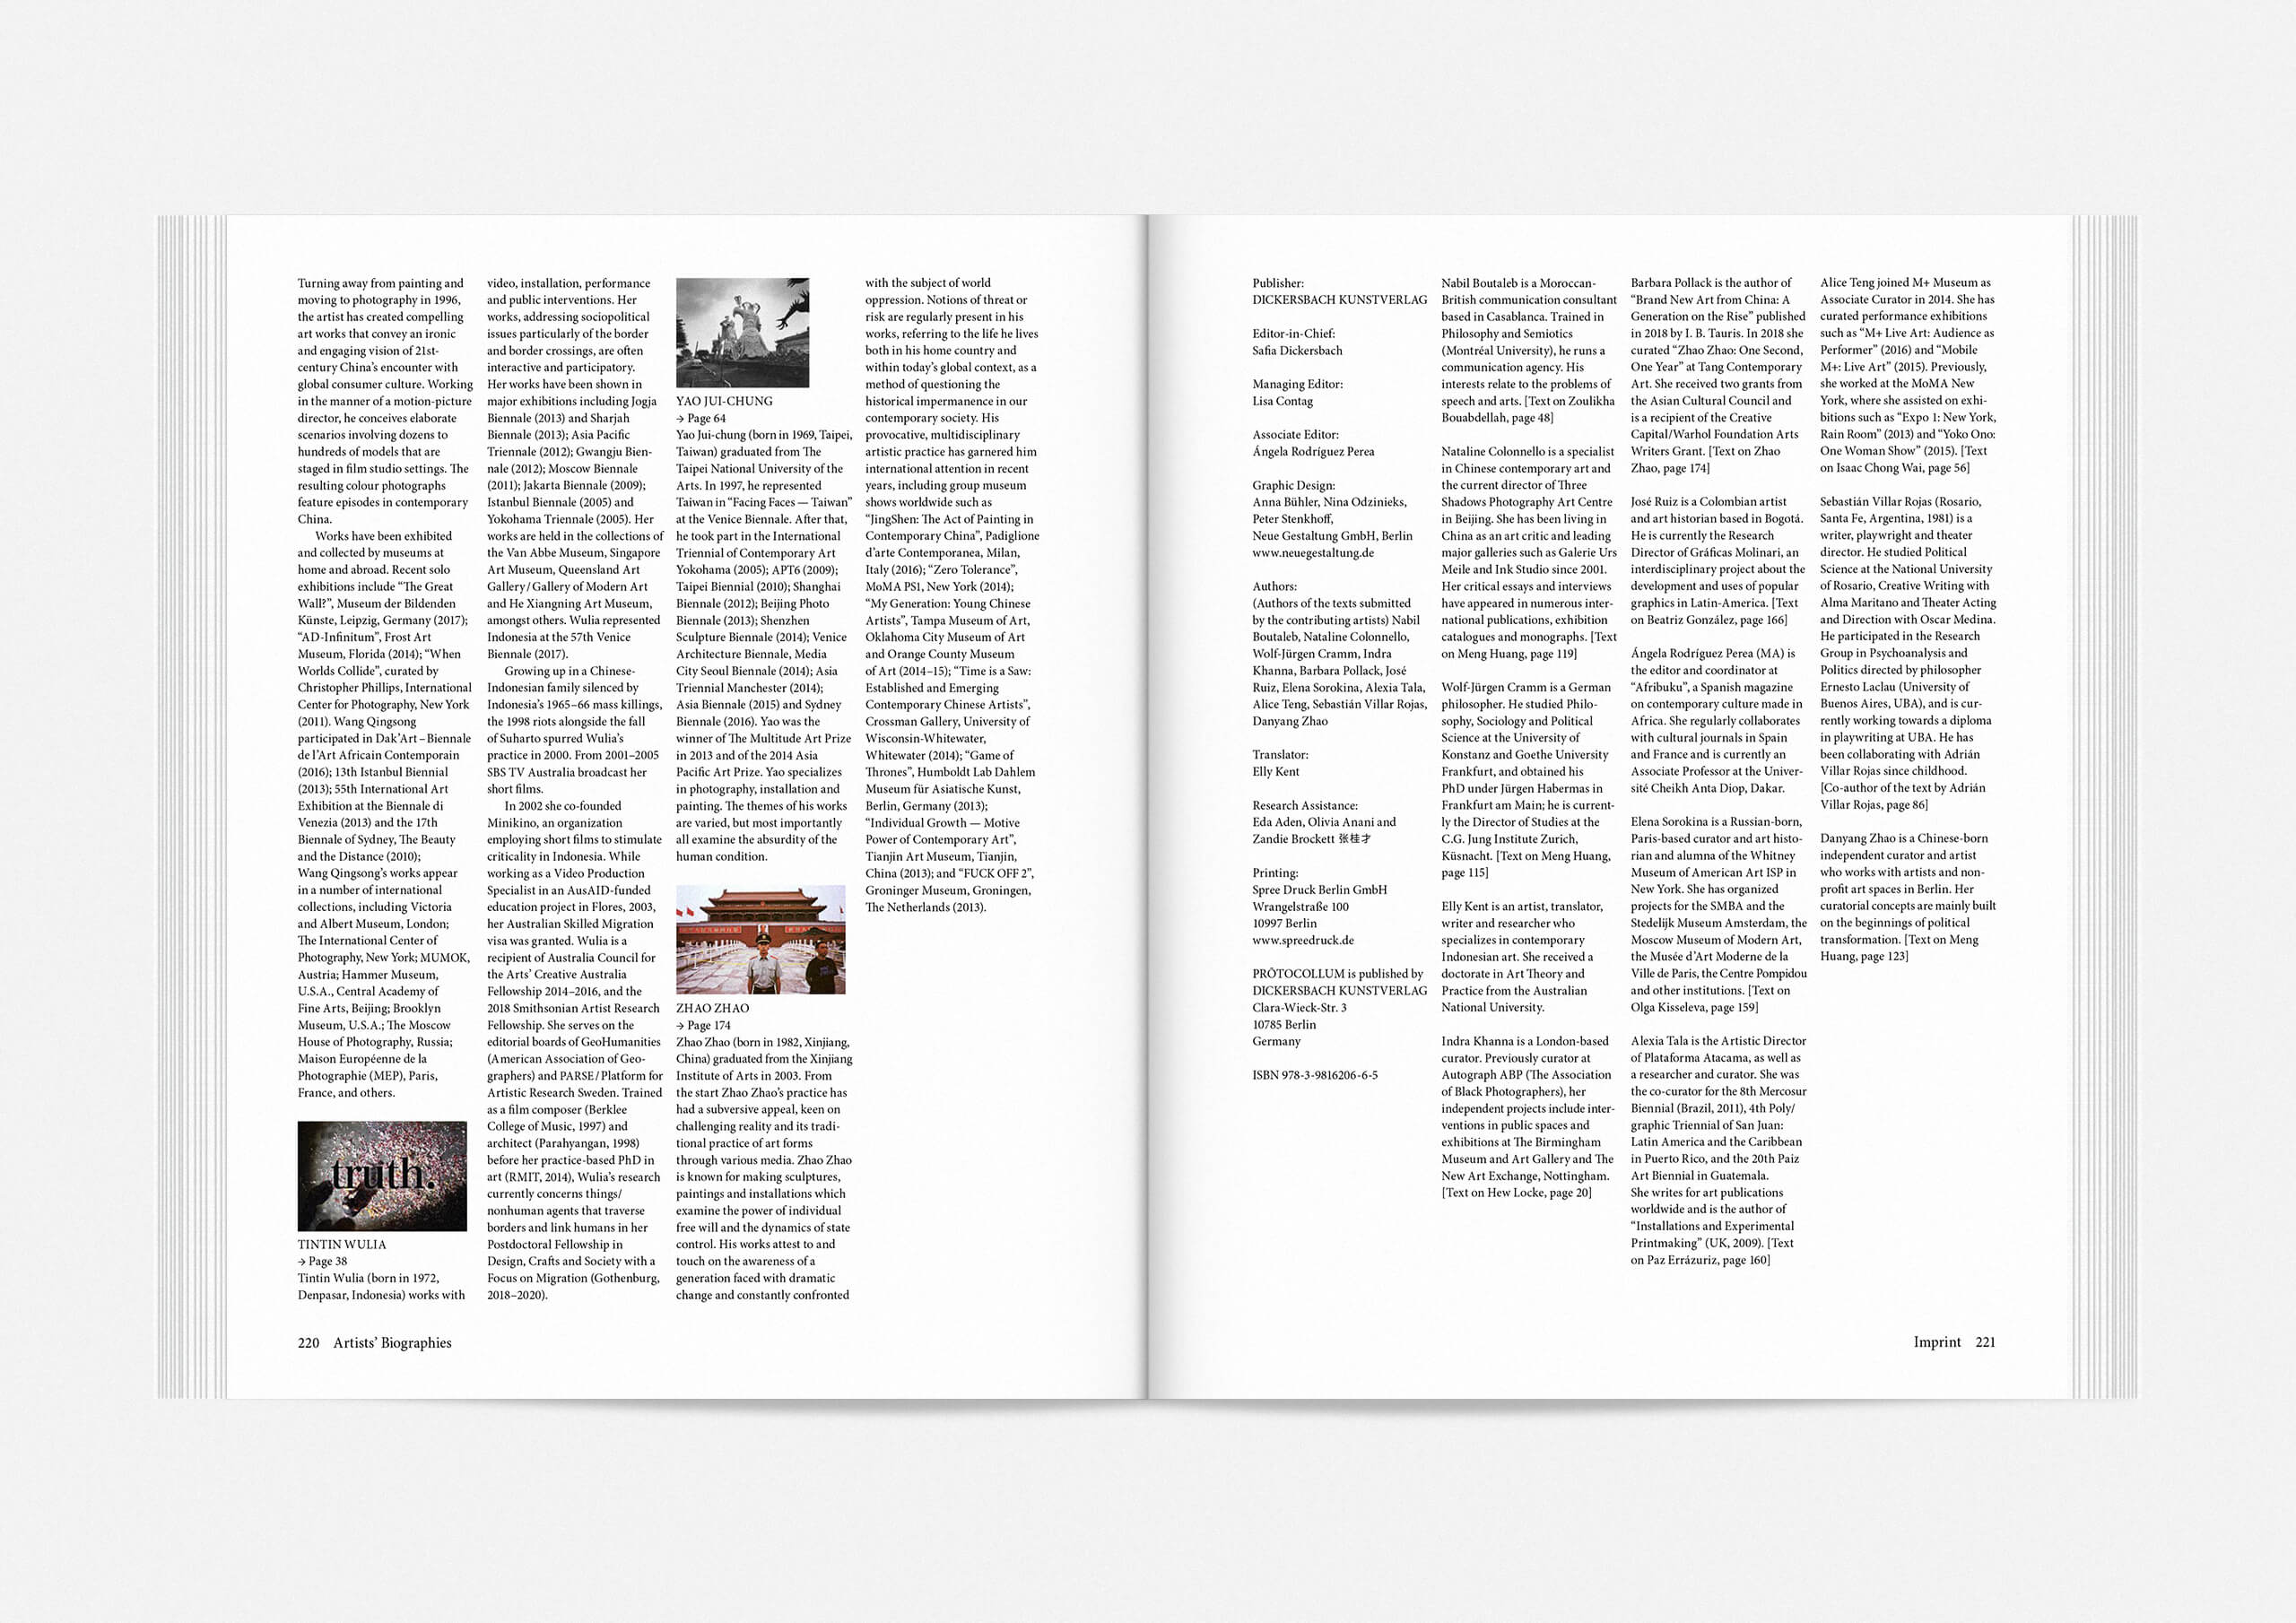 https://neuegestaltung.de/media/pages/clients/protocollum-issue-no-05/d61ddb4155-1597415138/protocollum-5-page-220221-ng.jpg